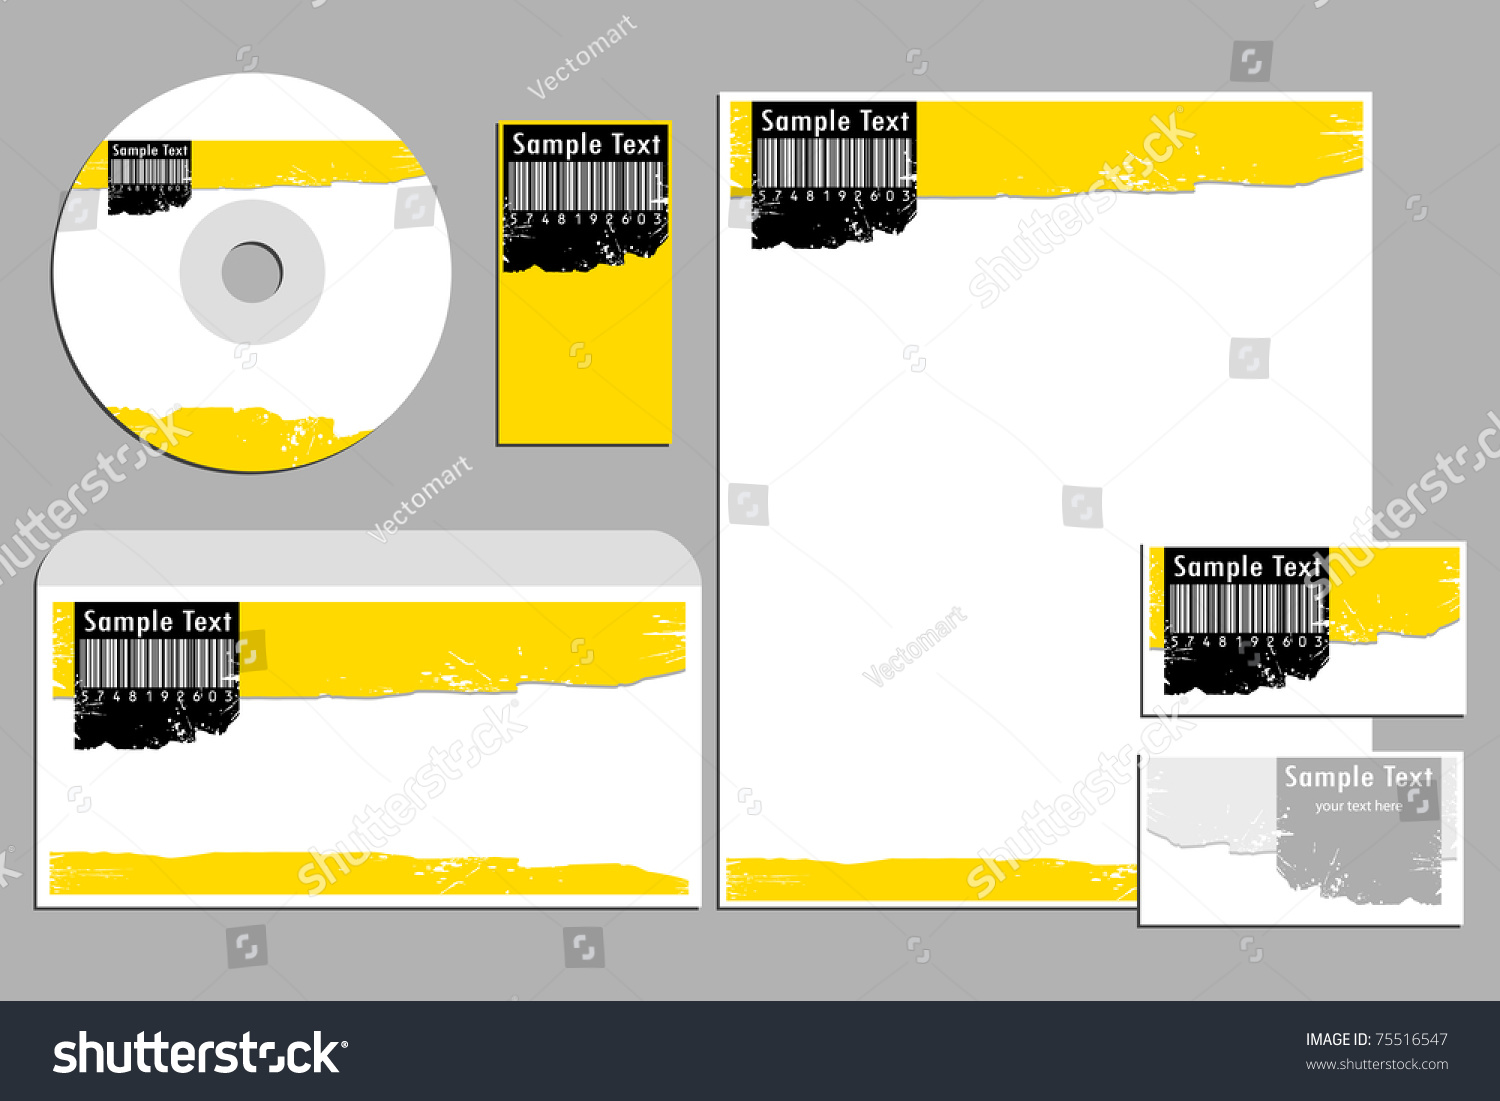 Illustration Barcode Business Template Business Cardcd Stock ...